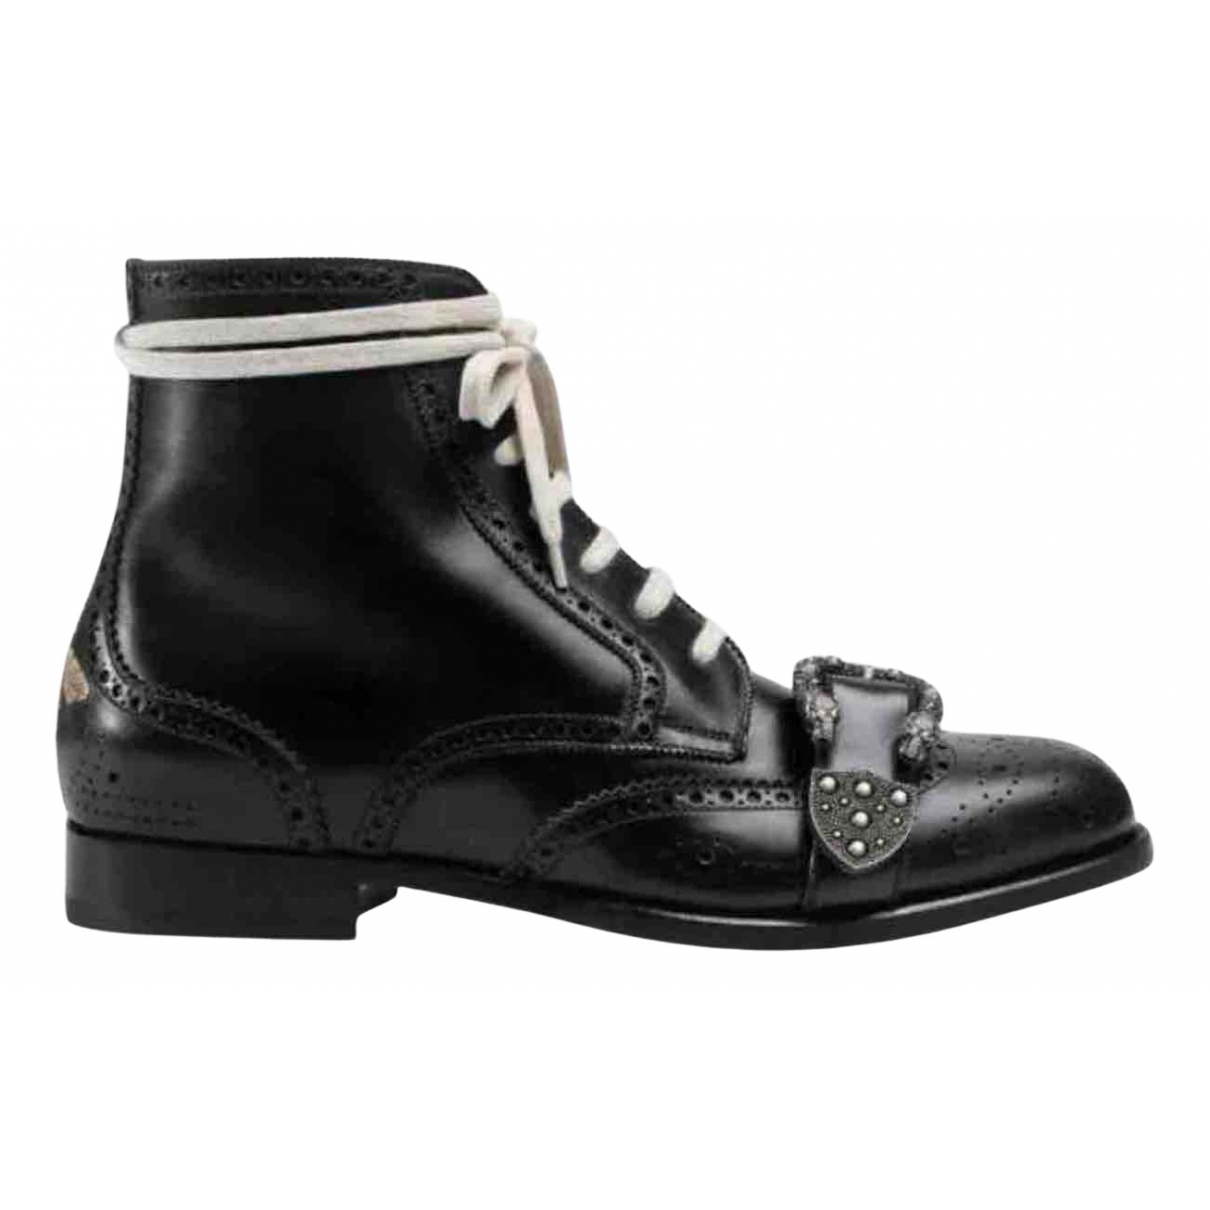 Gucci Queercore Black Leather Boots for Men 9 UK